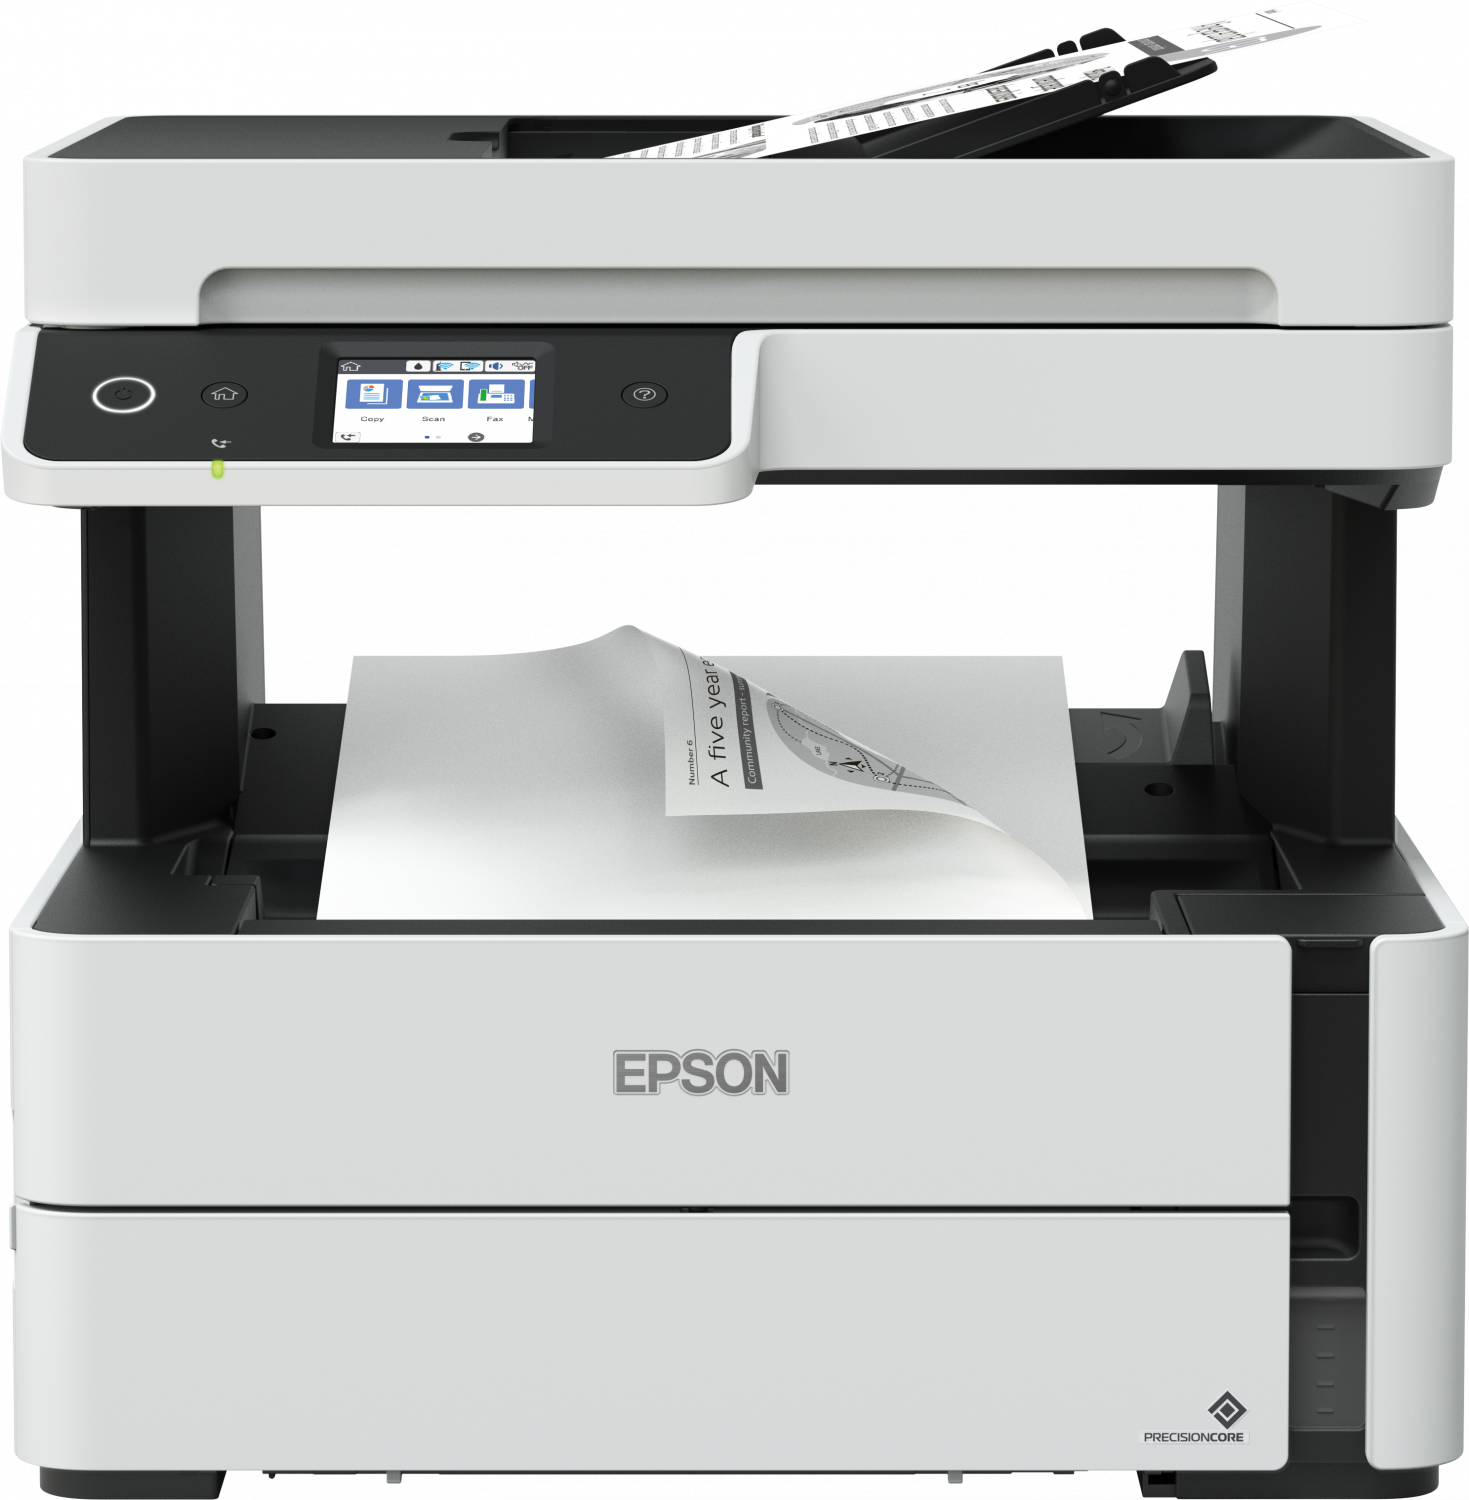 epson M3140 scanner driver for pc